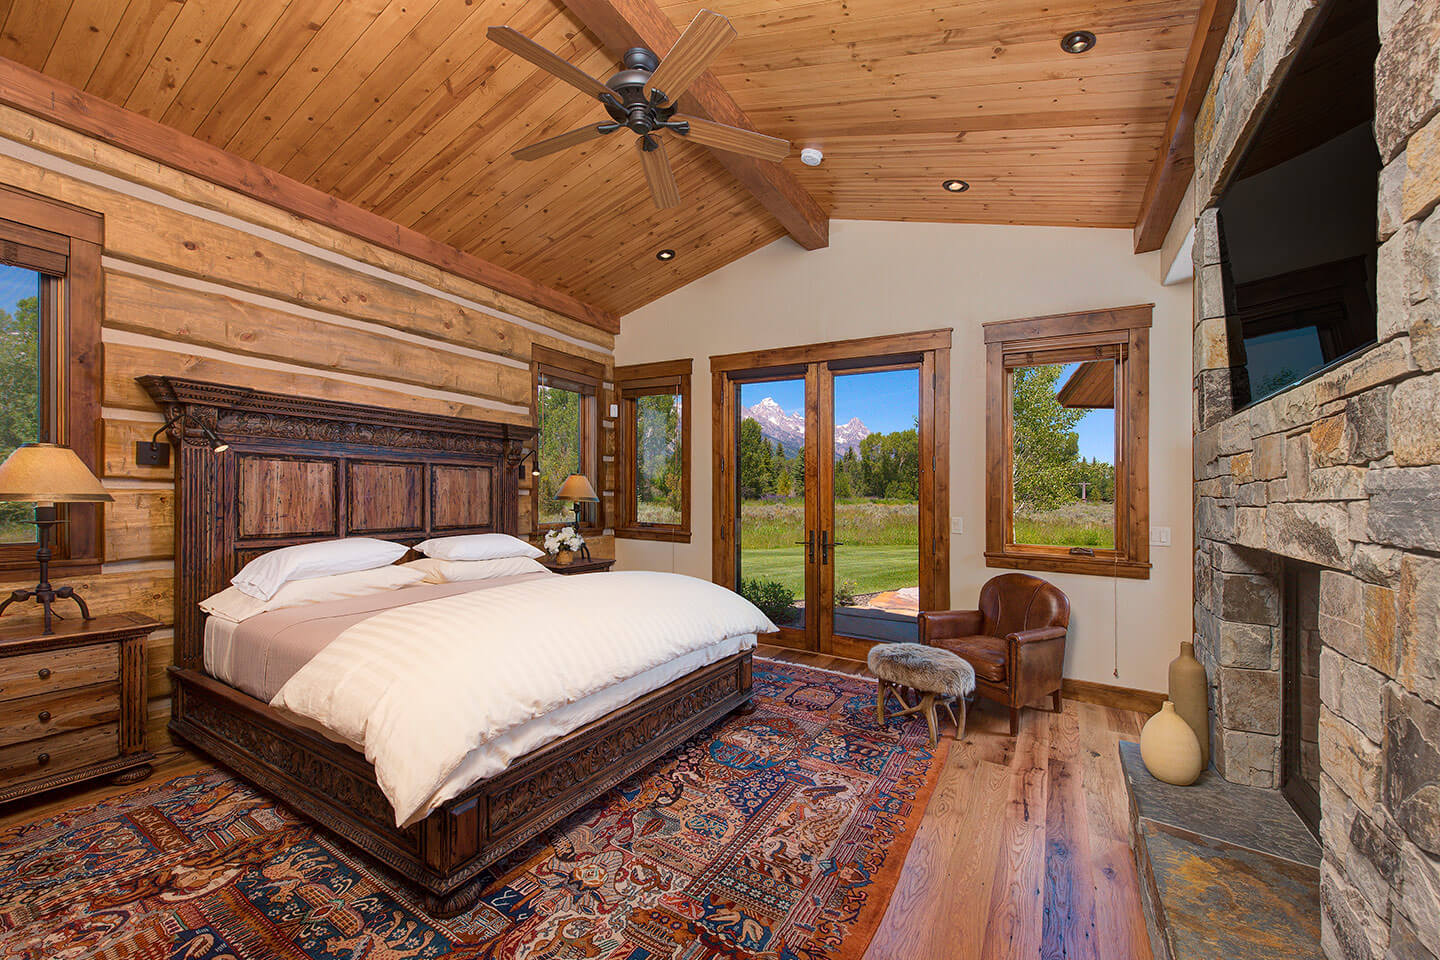 Bedroom with a variety of woods, and native stone fireplace